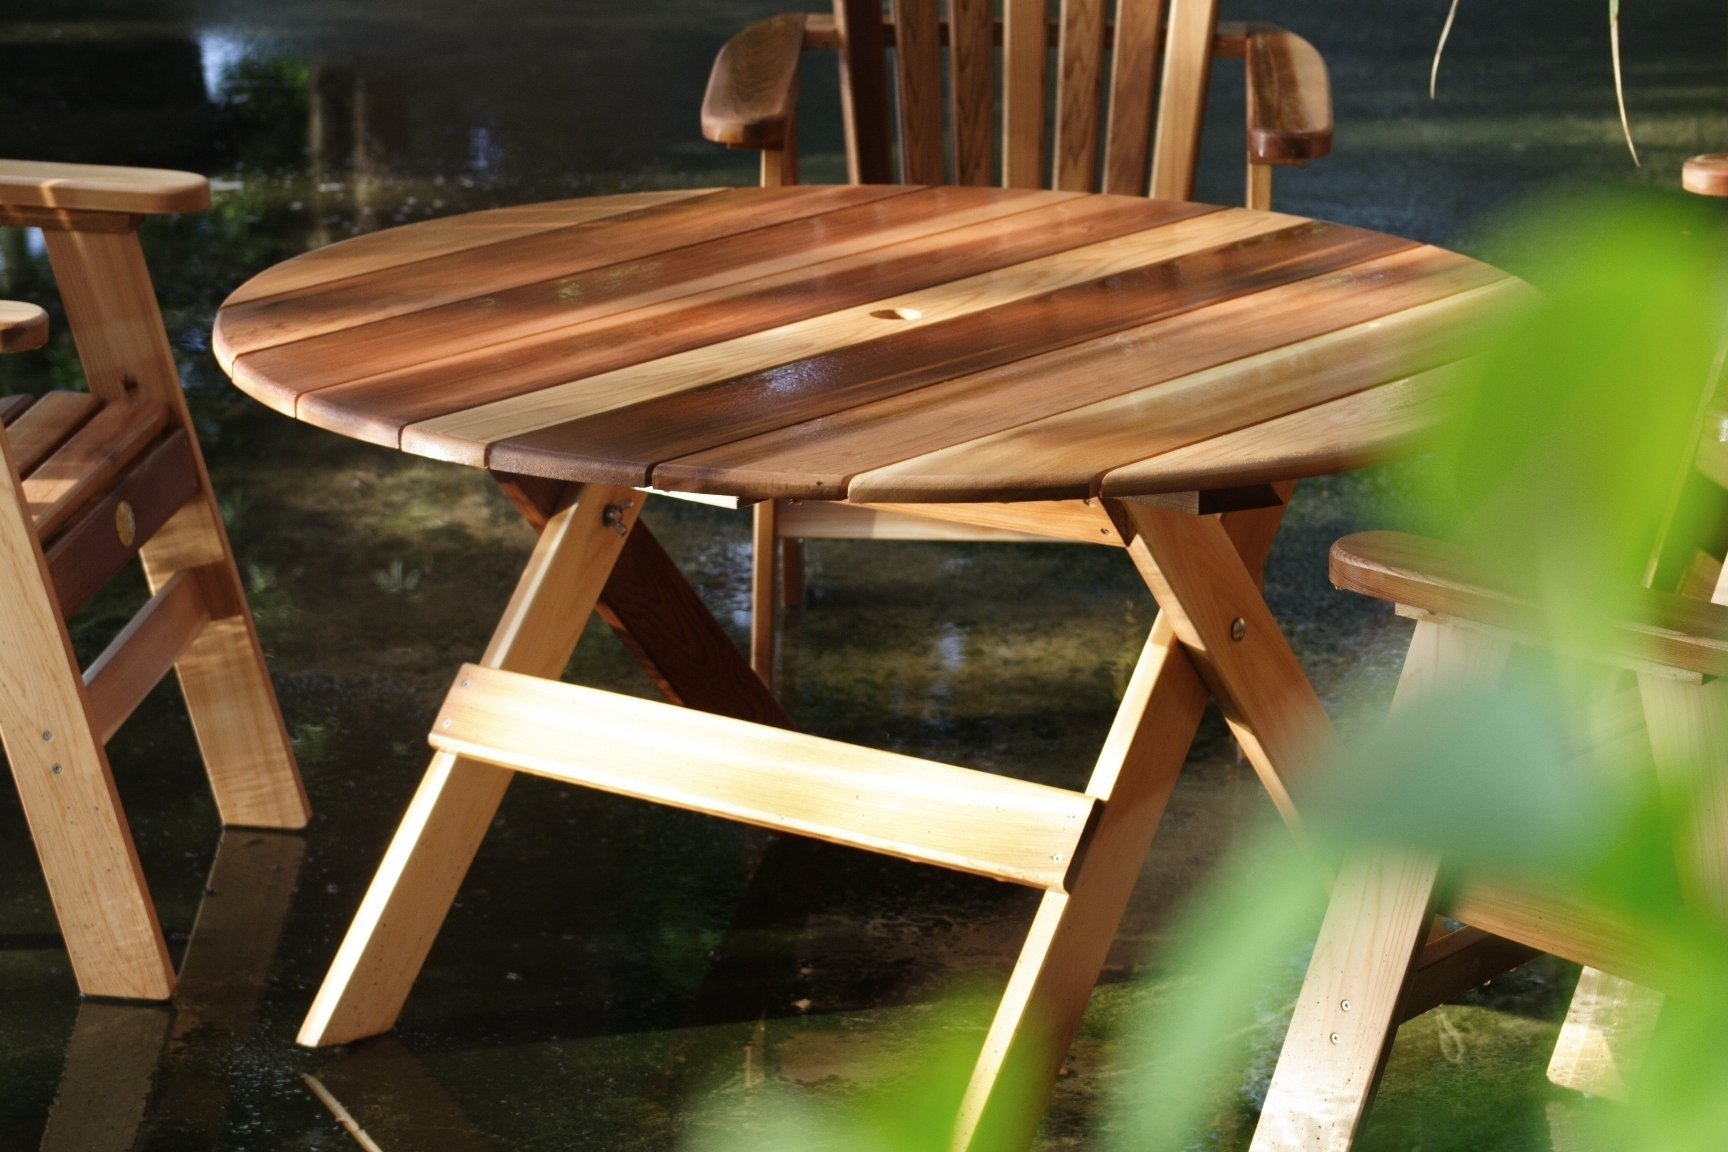 Charlton Home Macie Round Wooden Dining Table | Wayfair Intended For Most Up To Date Macie Round Dining Tables (Photo 8 of 20)